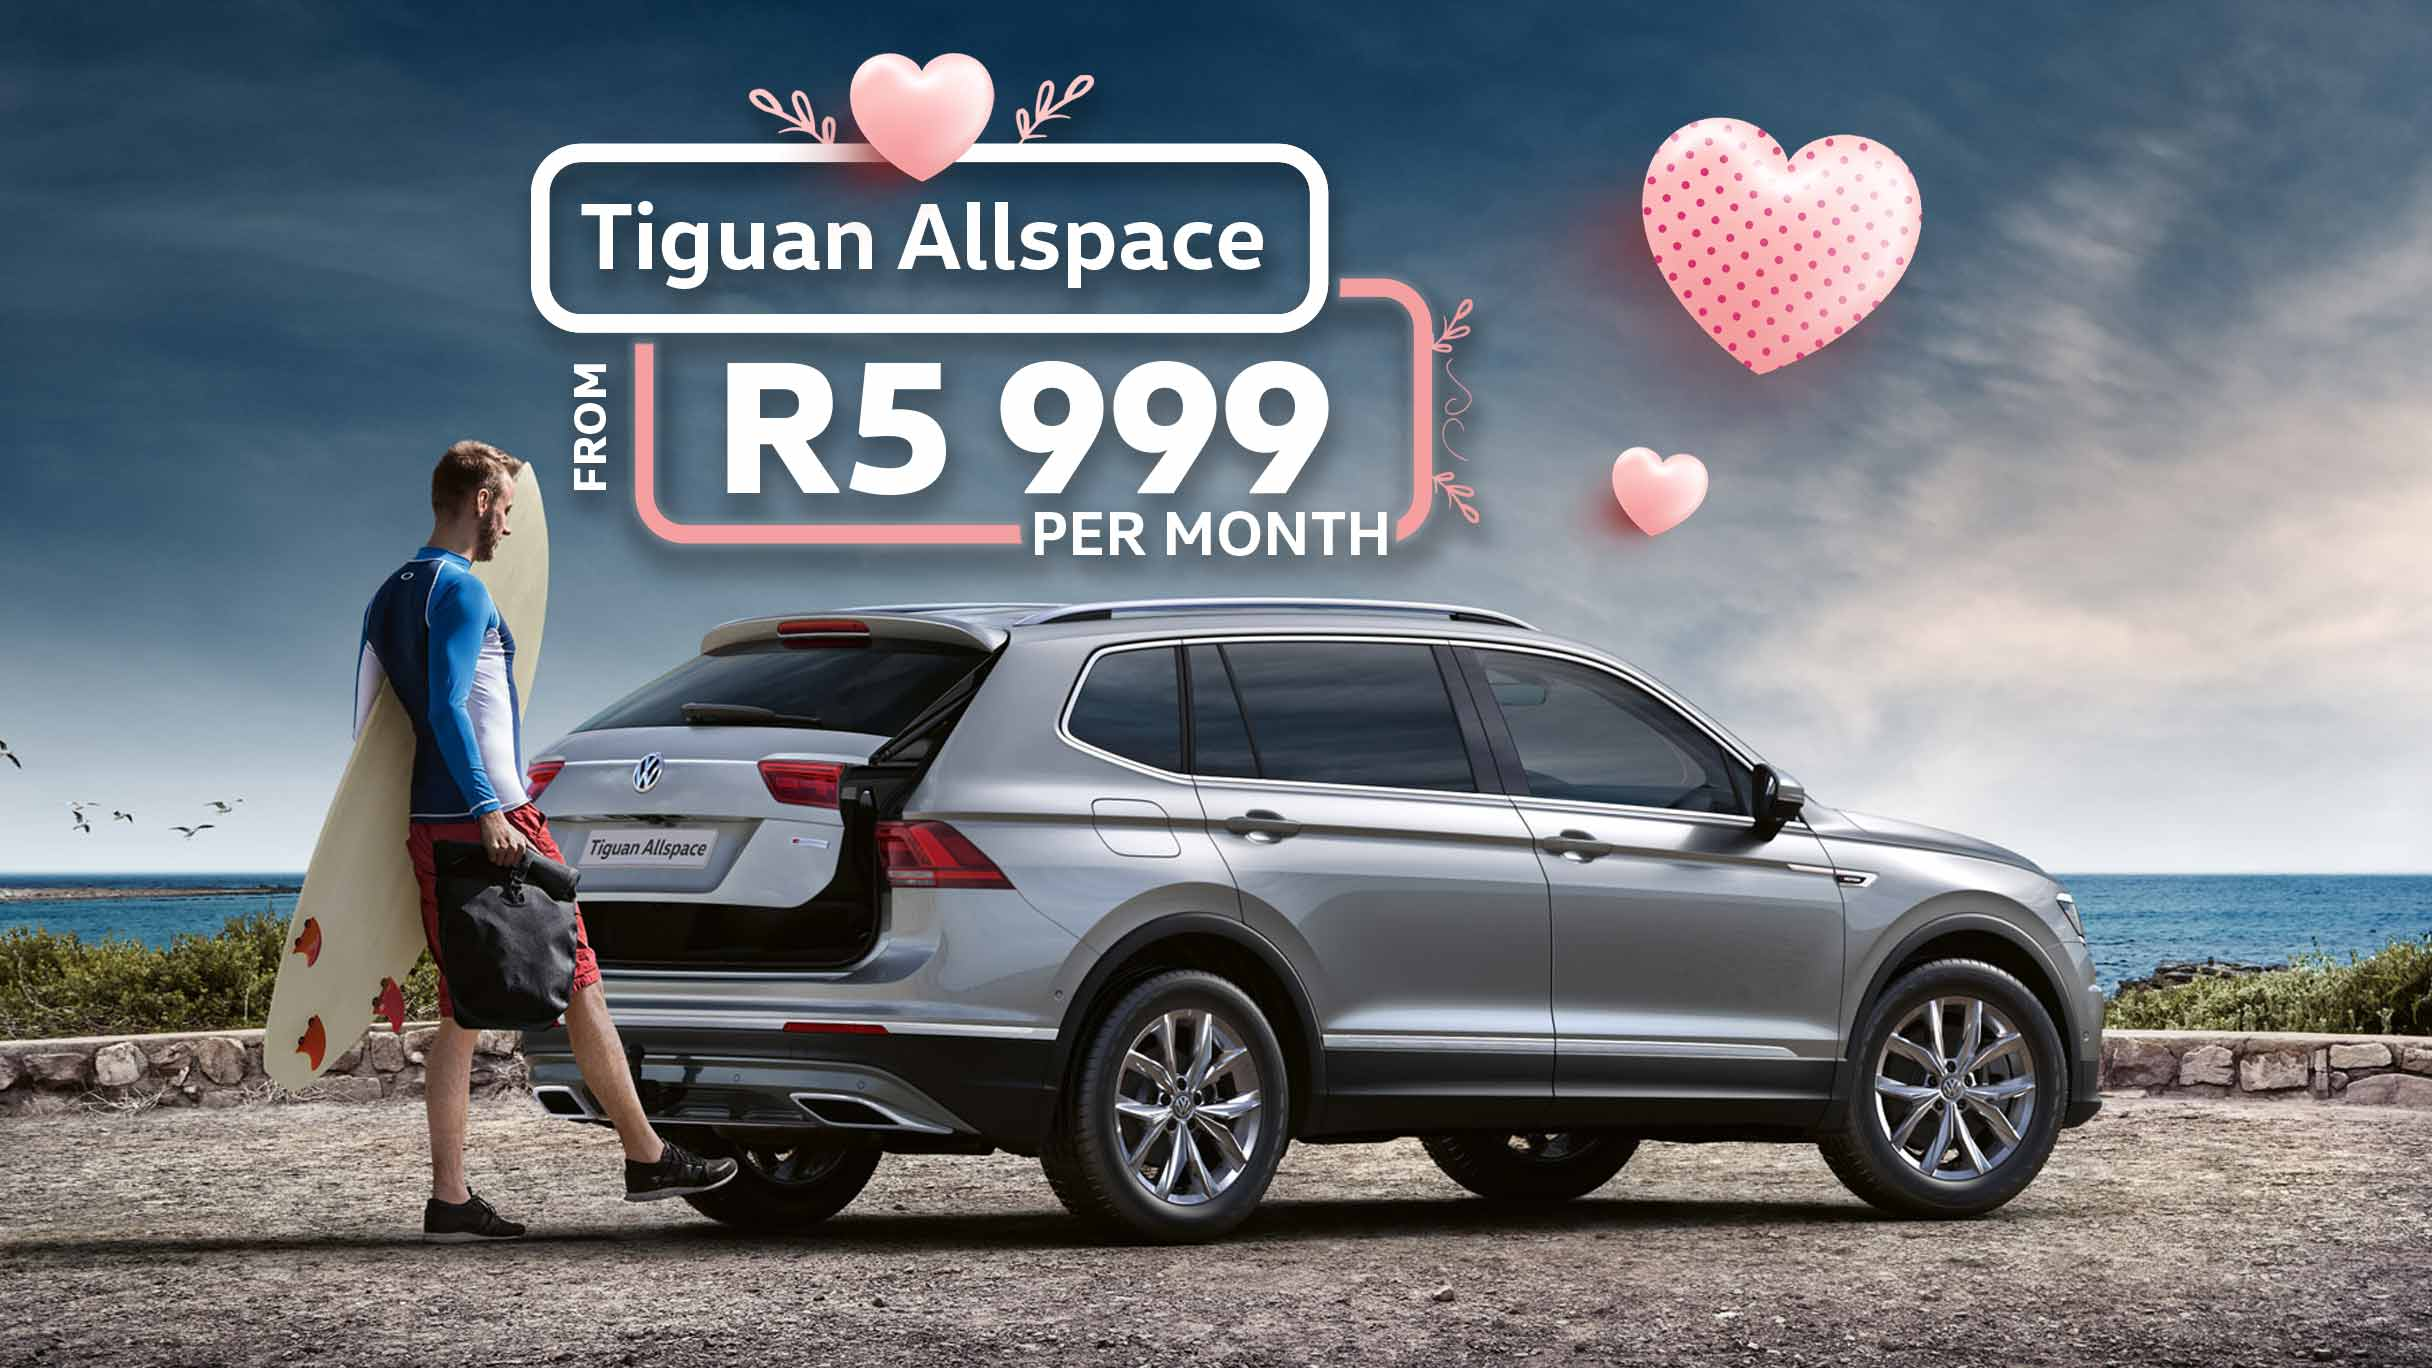 Tiguan Allspace offer at Barons VW